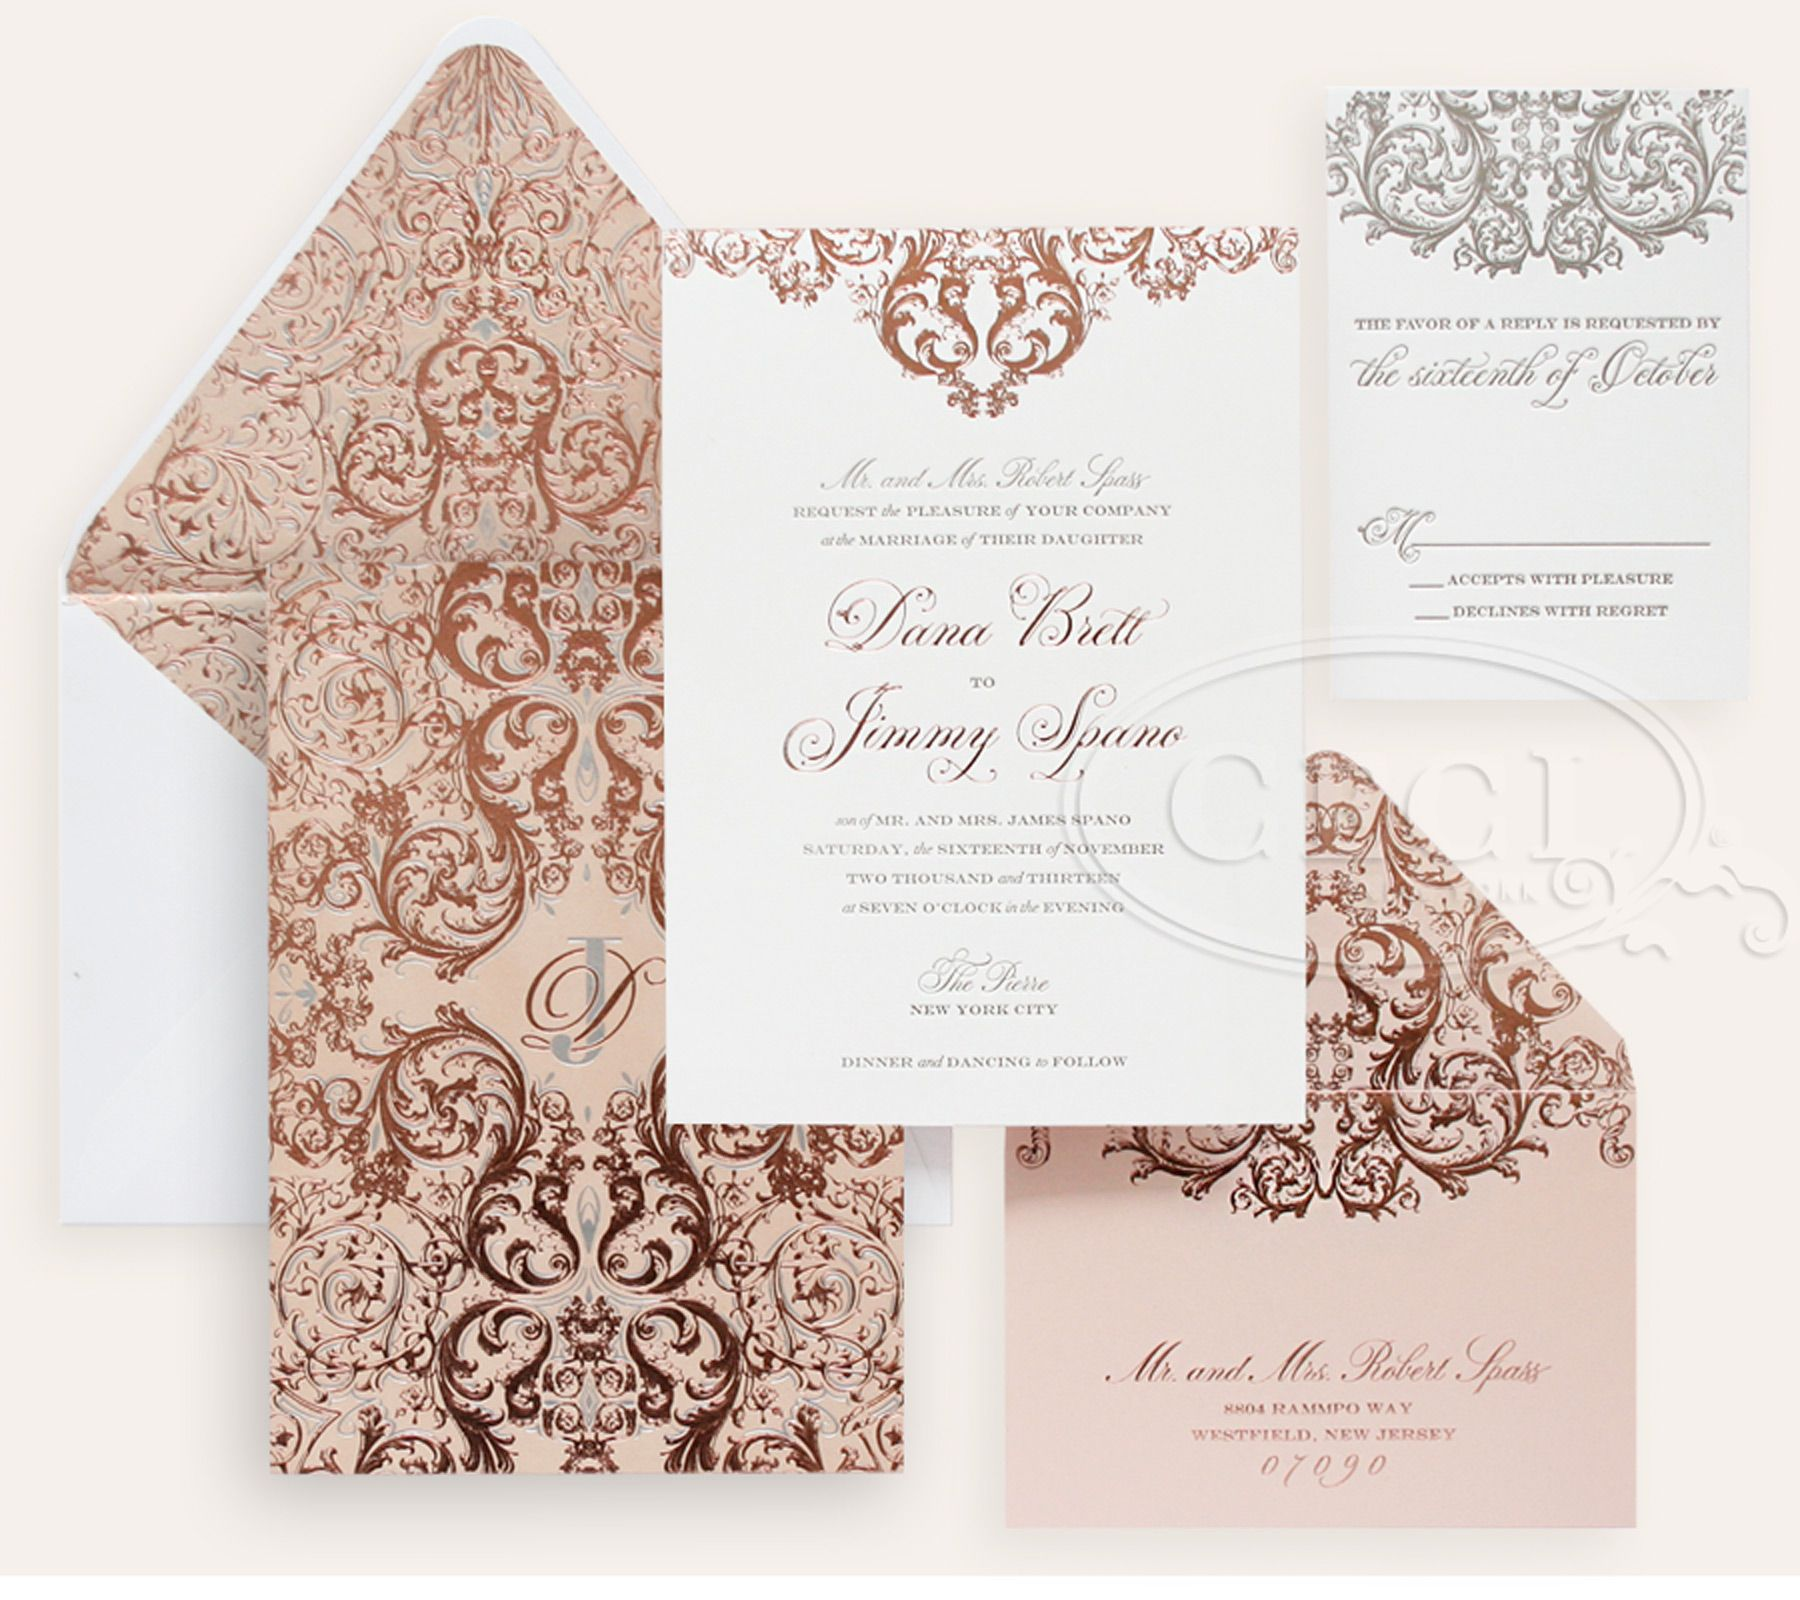 rose gold wedding invitations Luxury Wedding Invitations by Ceci New York Our Muse Romantic Rose Gold Wedding